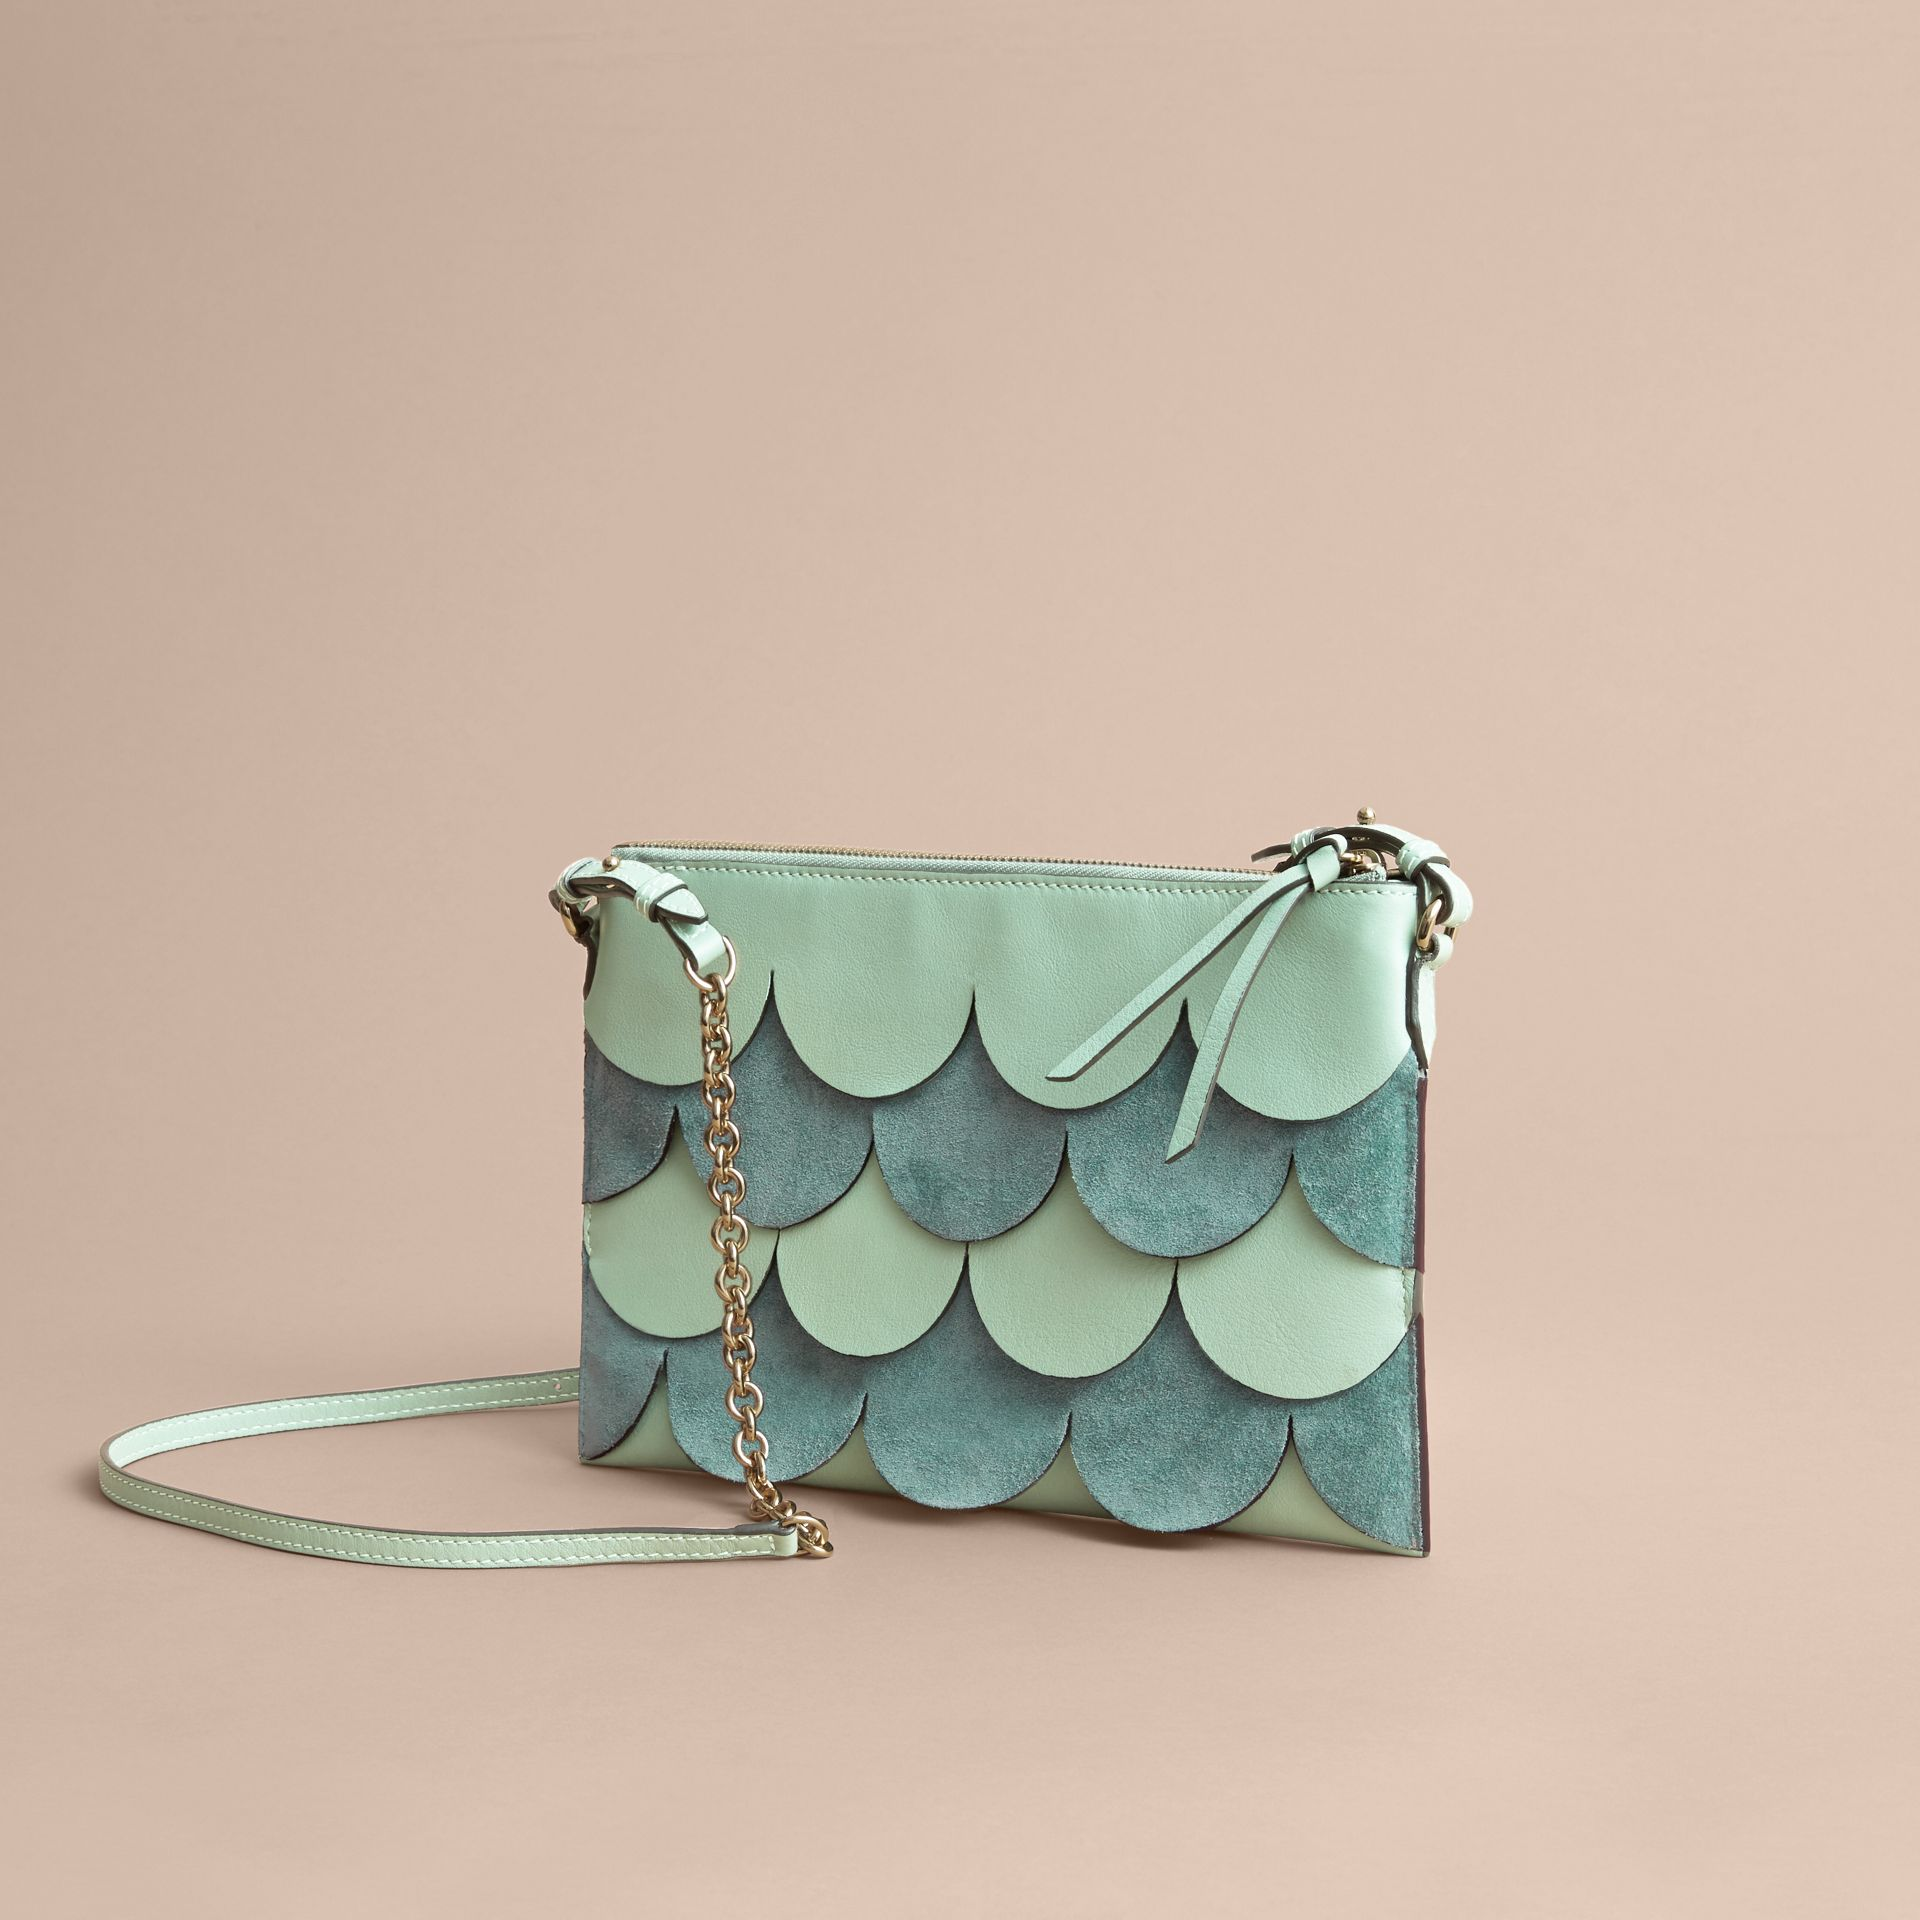 Two-tone Scalloped Leather and Suede Clutch Bag in Celadon Green - Women | Burberry Australia - gallery image 5